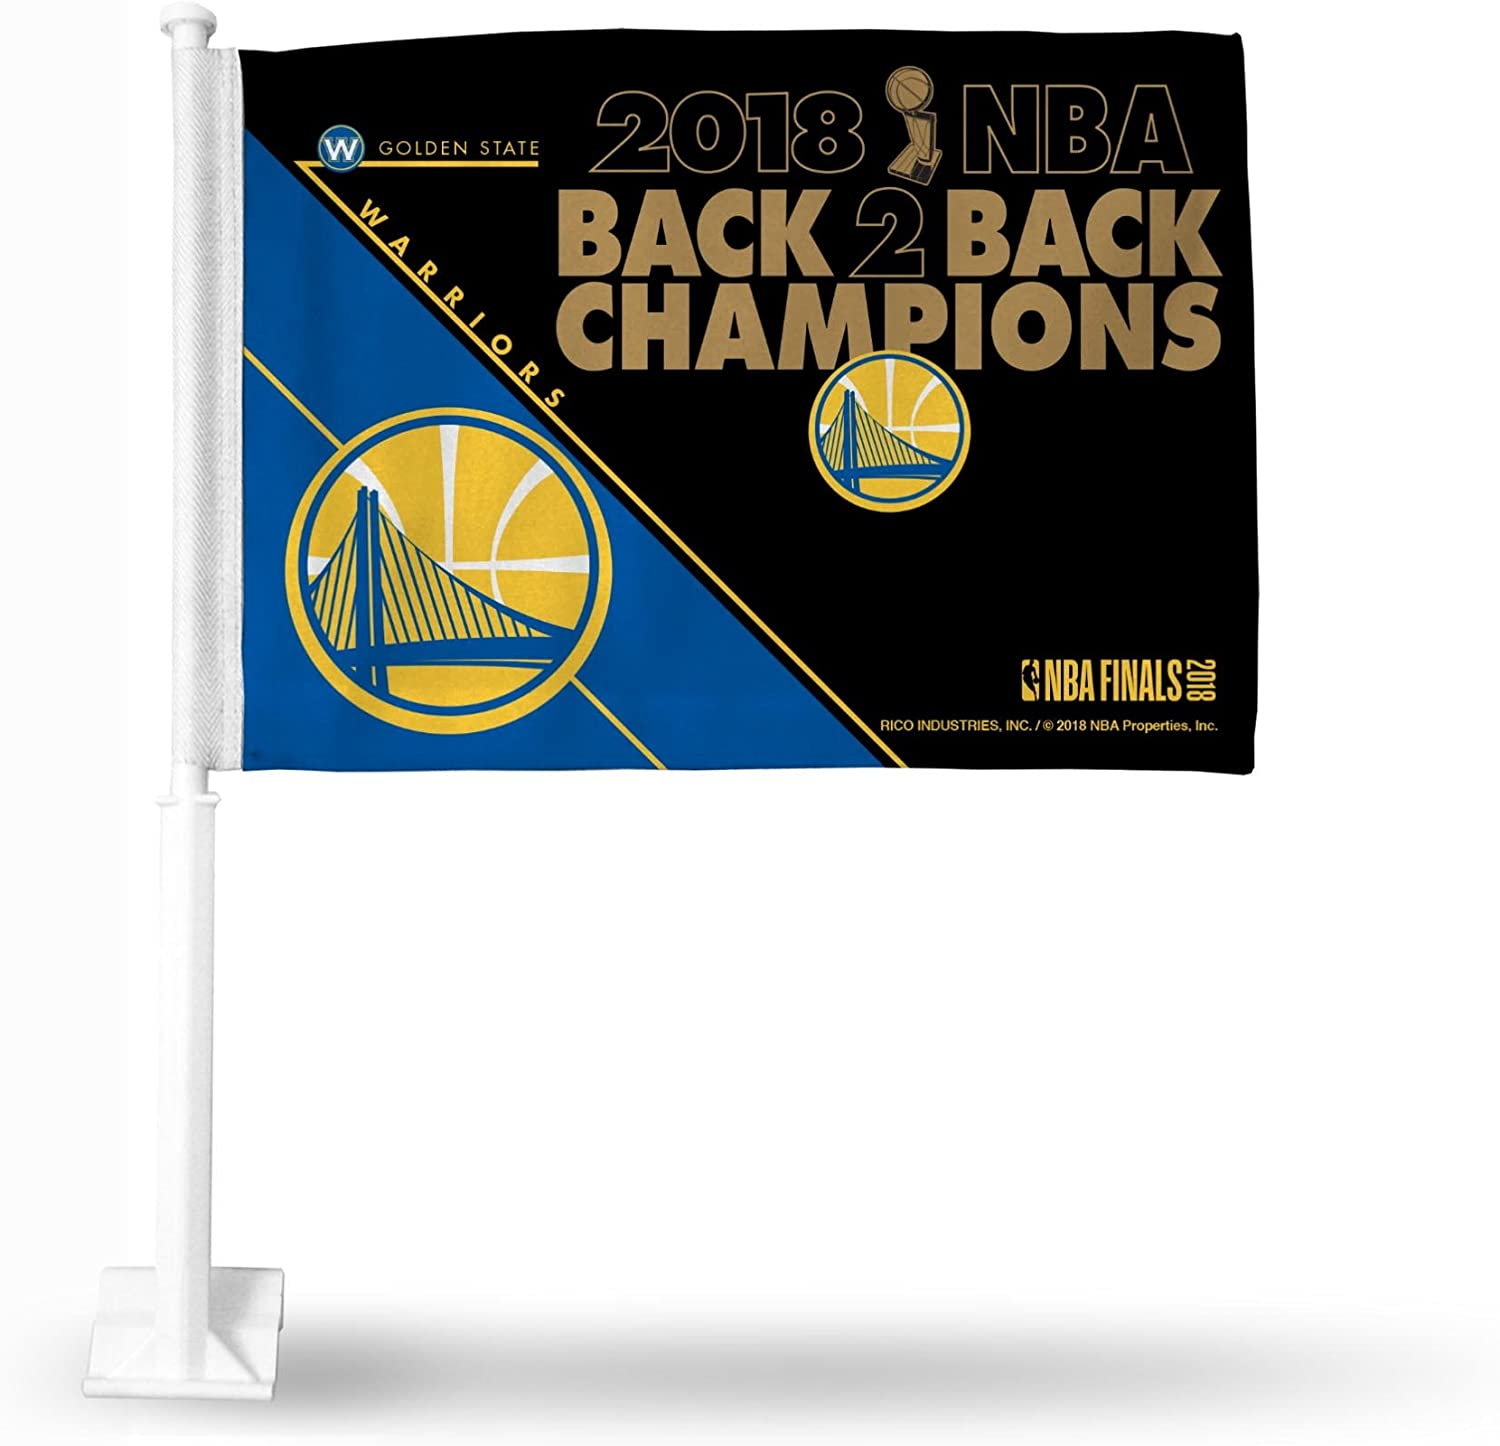 Golden State Warriors 2018 Champions Plastic Frame License Plate Tag Cover Basketball Inc Rico Industries